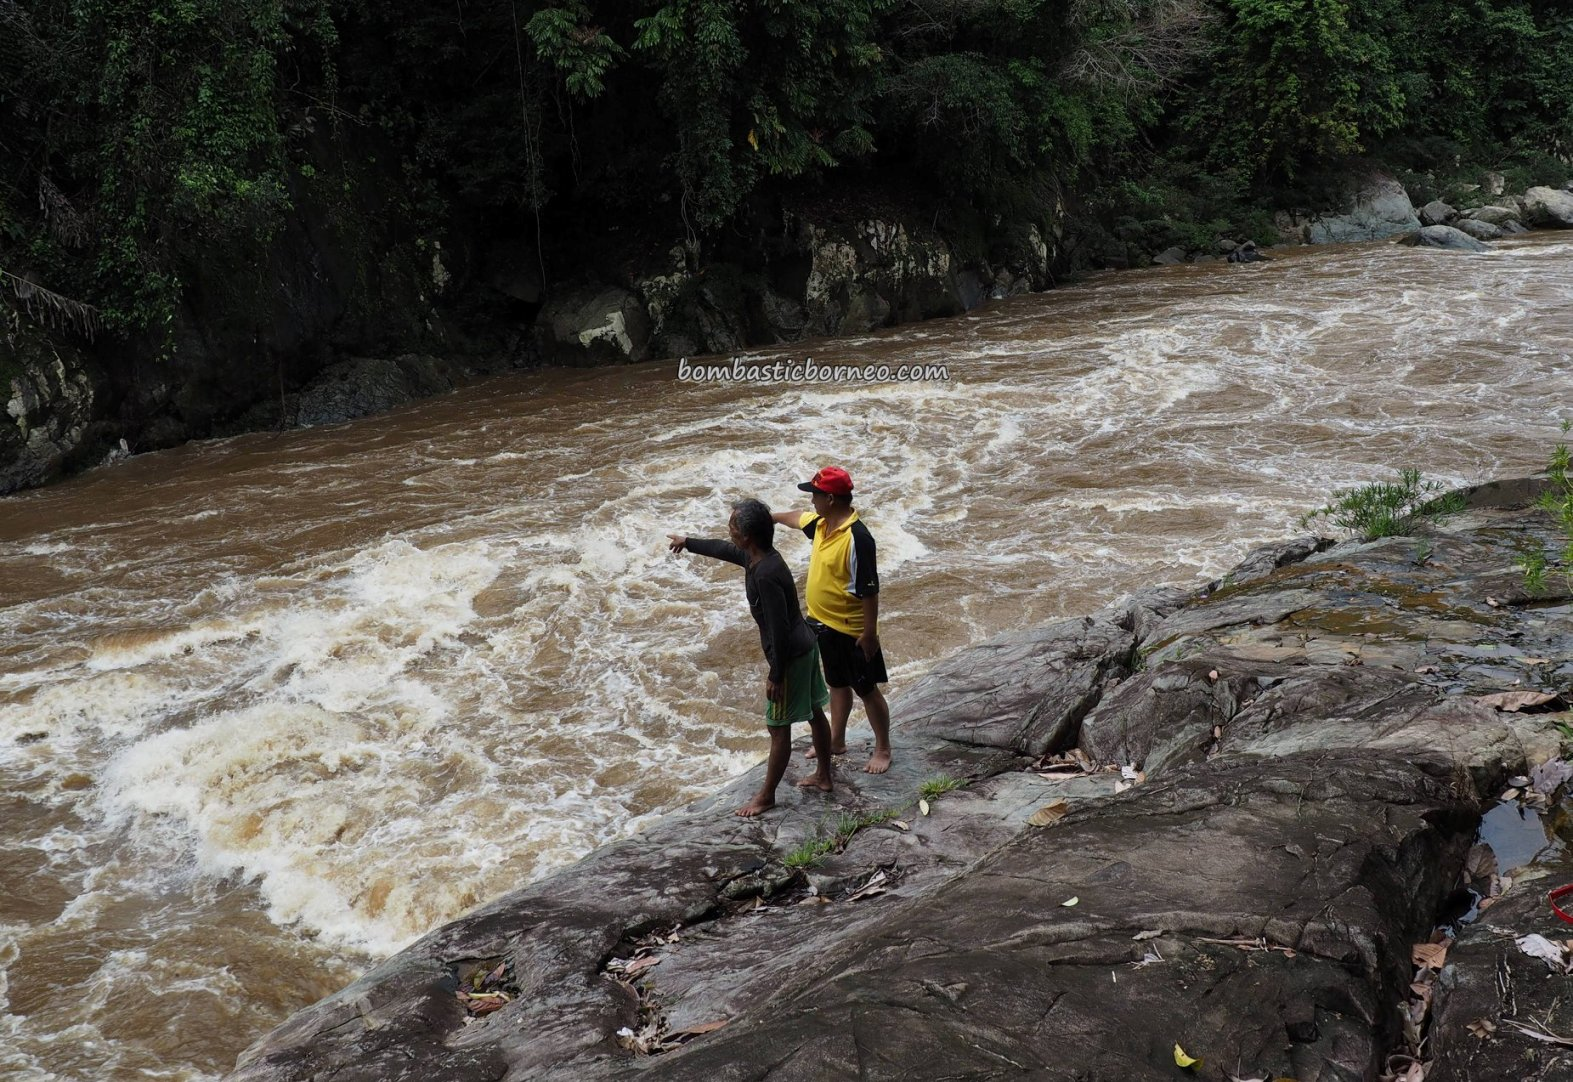 Rapids, Sungai Kereho, Keriau river, backpackers, destination, Borneo, Indonesia, West Kalimantan, Kapuas Hulu, Tourism, tourist attraction, travel guide, crossborder, 印尼西加里曼丹, 婆羅洲急流